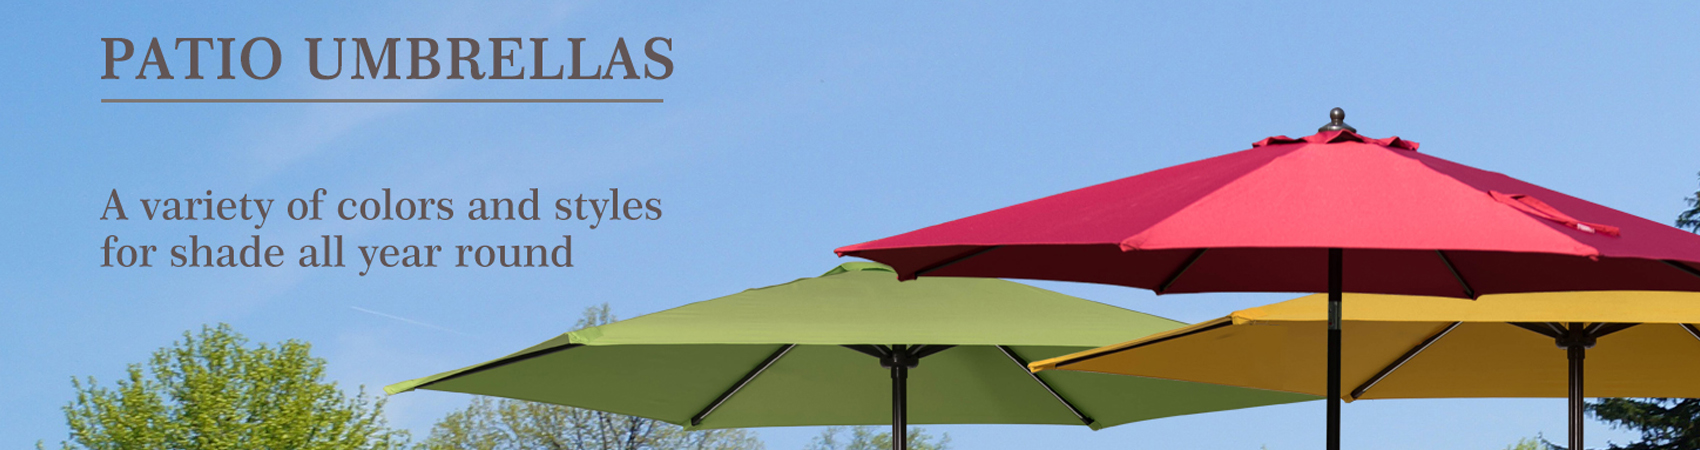 patio-umbrella.jpg